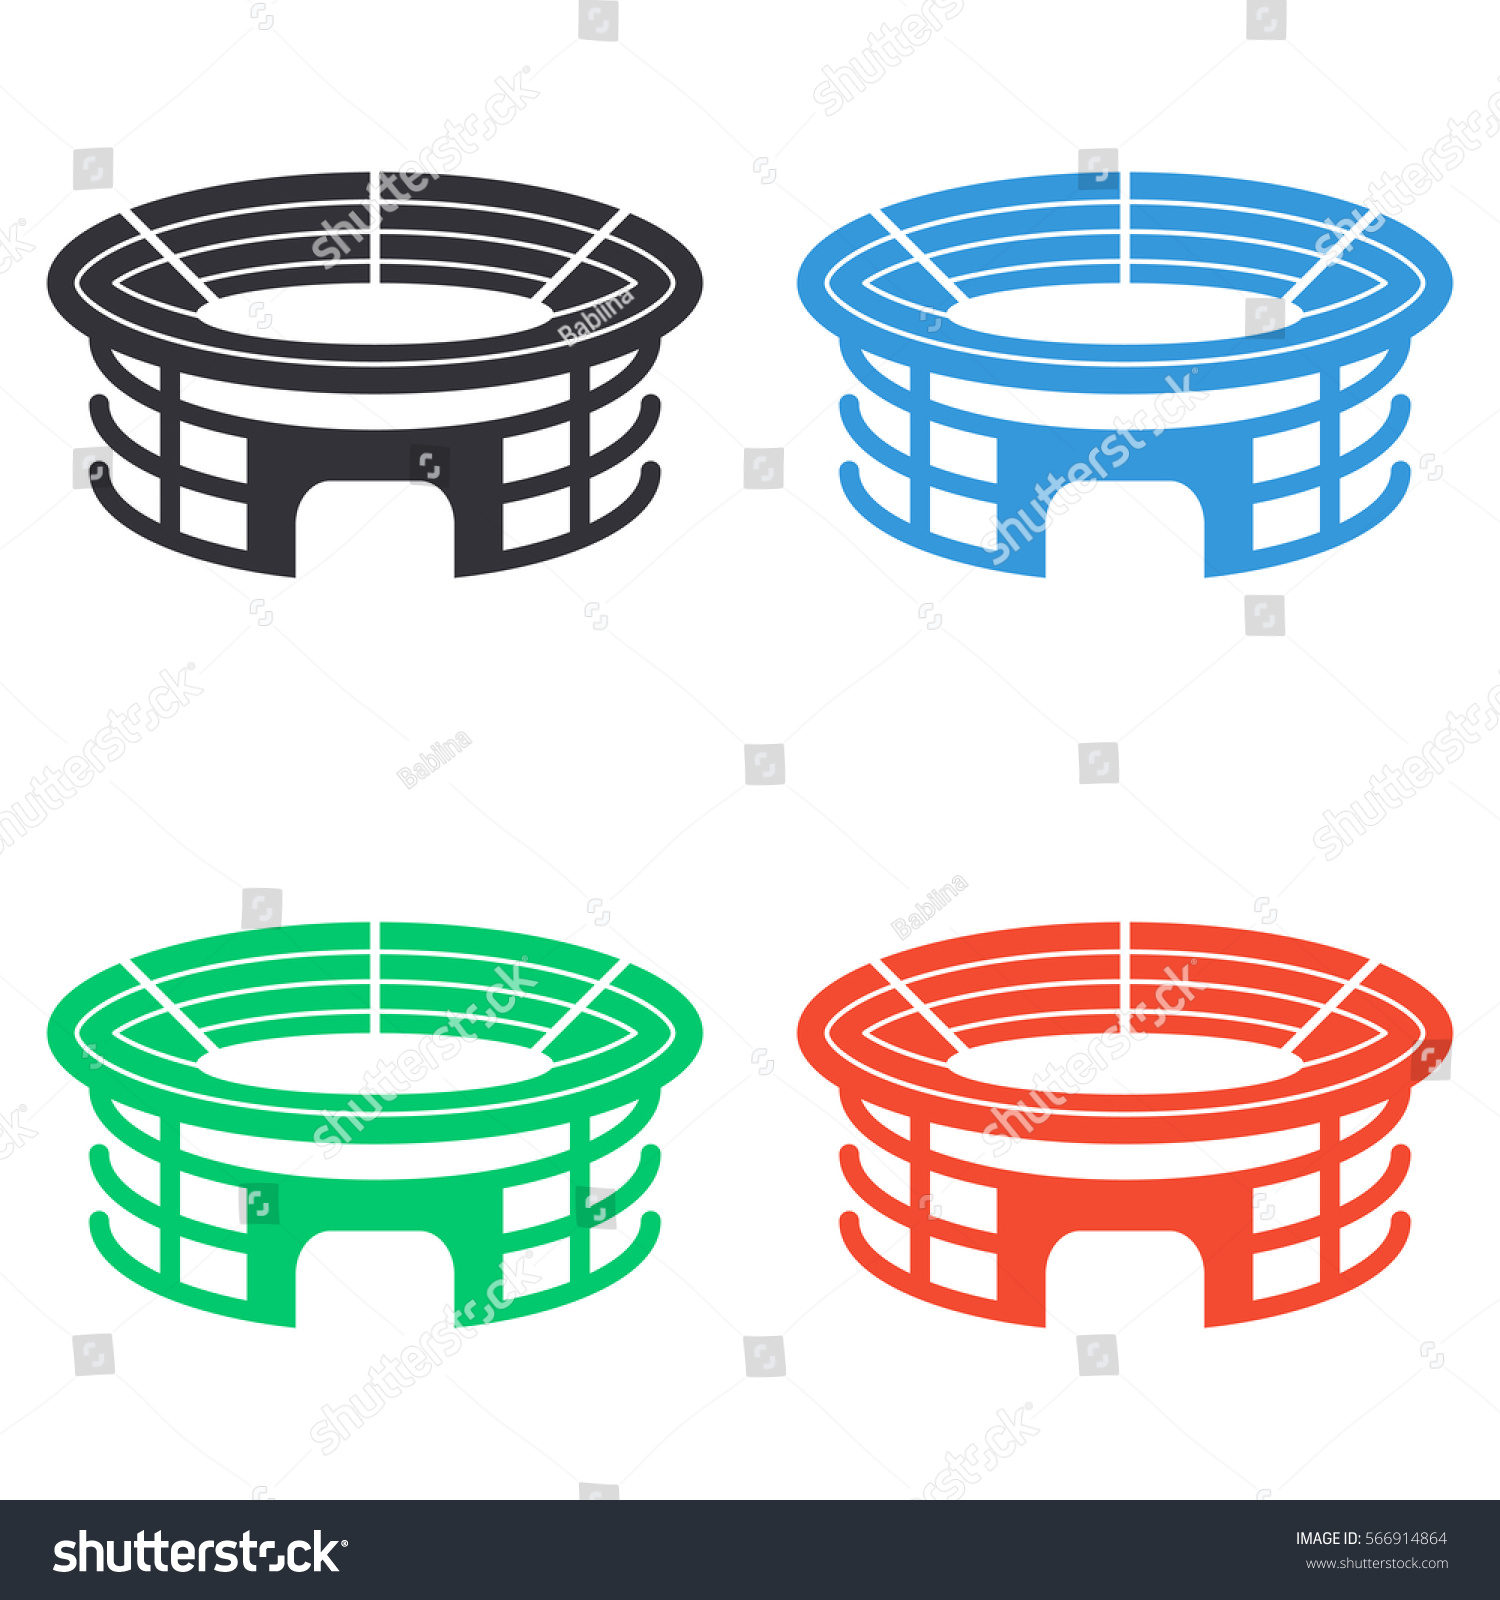 stadium icon. Stadium Icon - Colored Vector Set